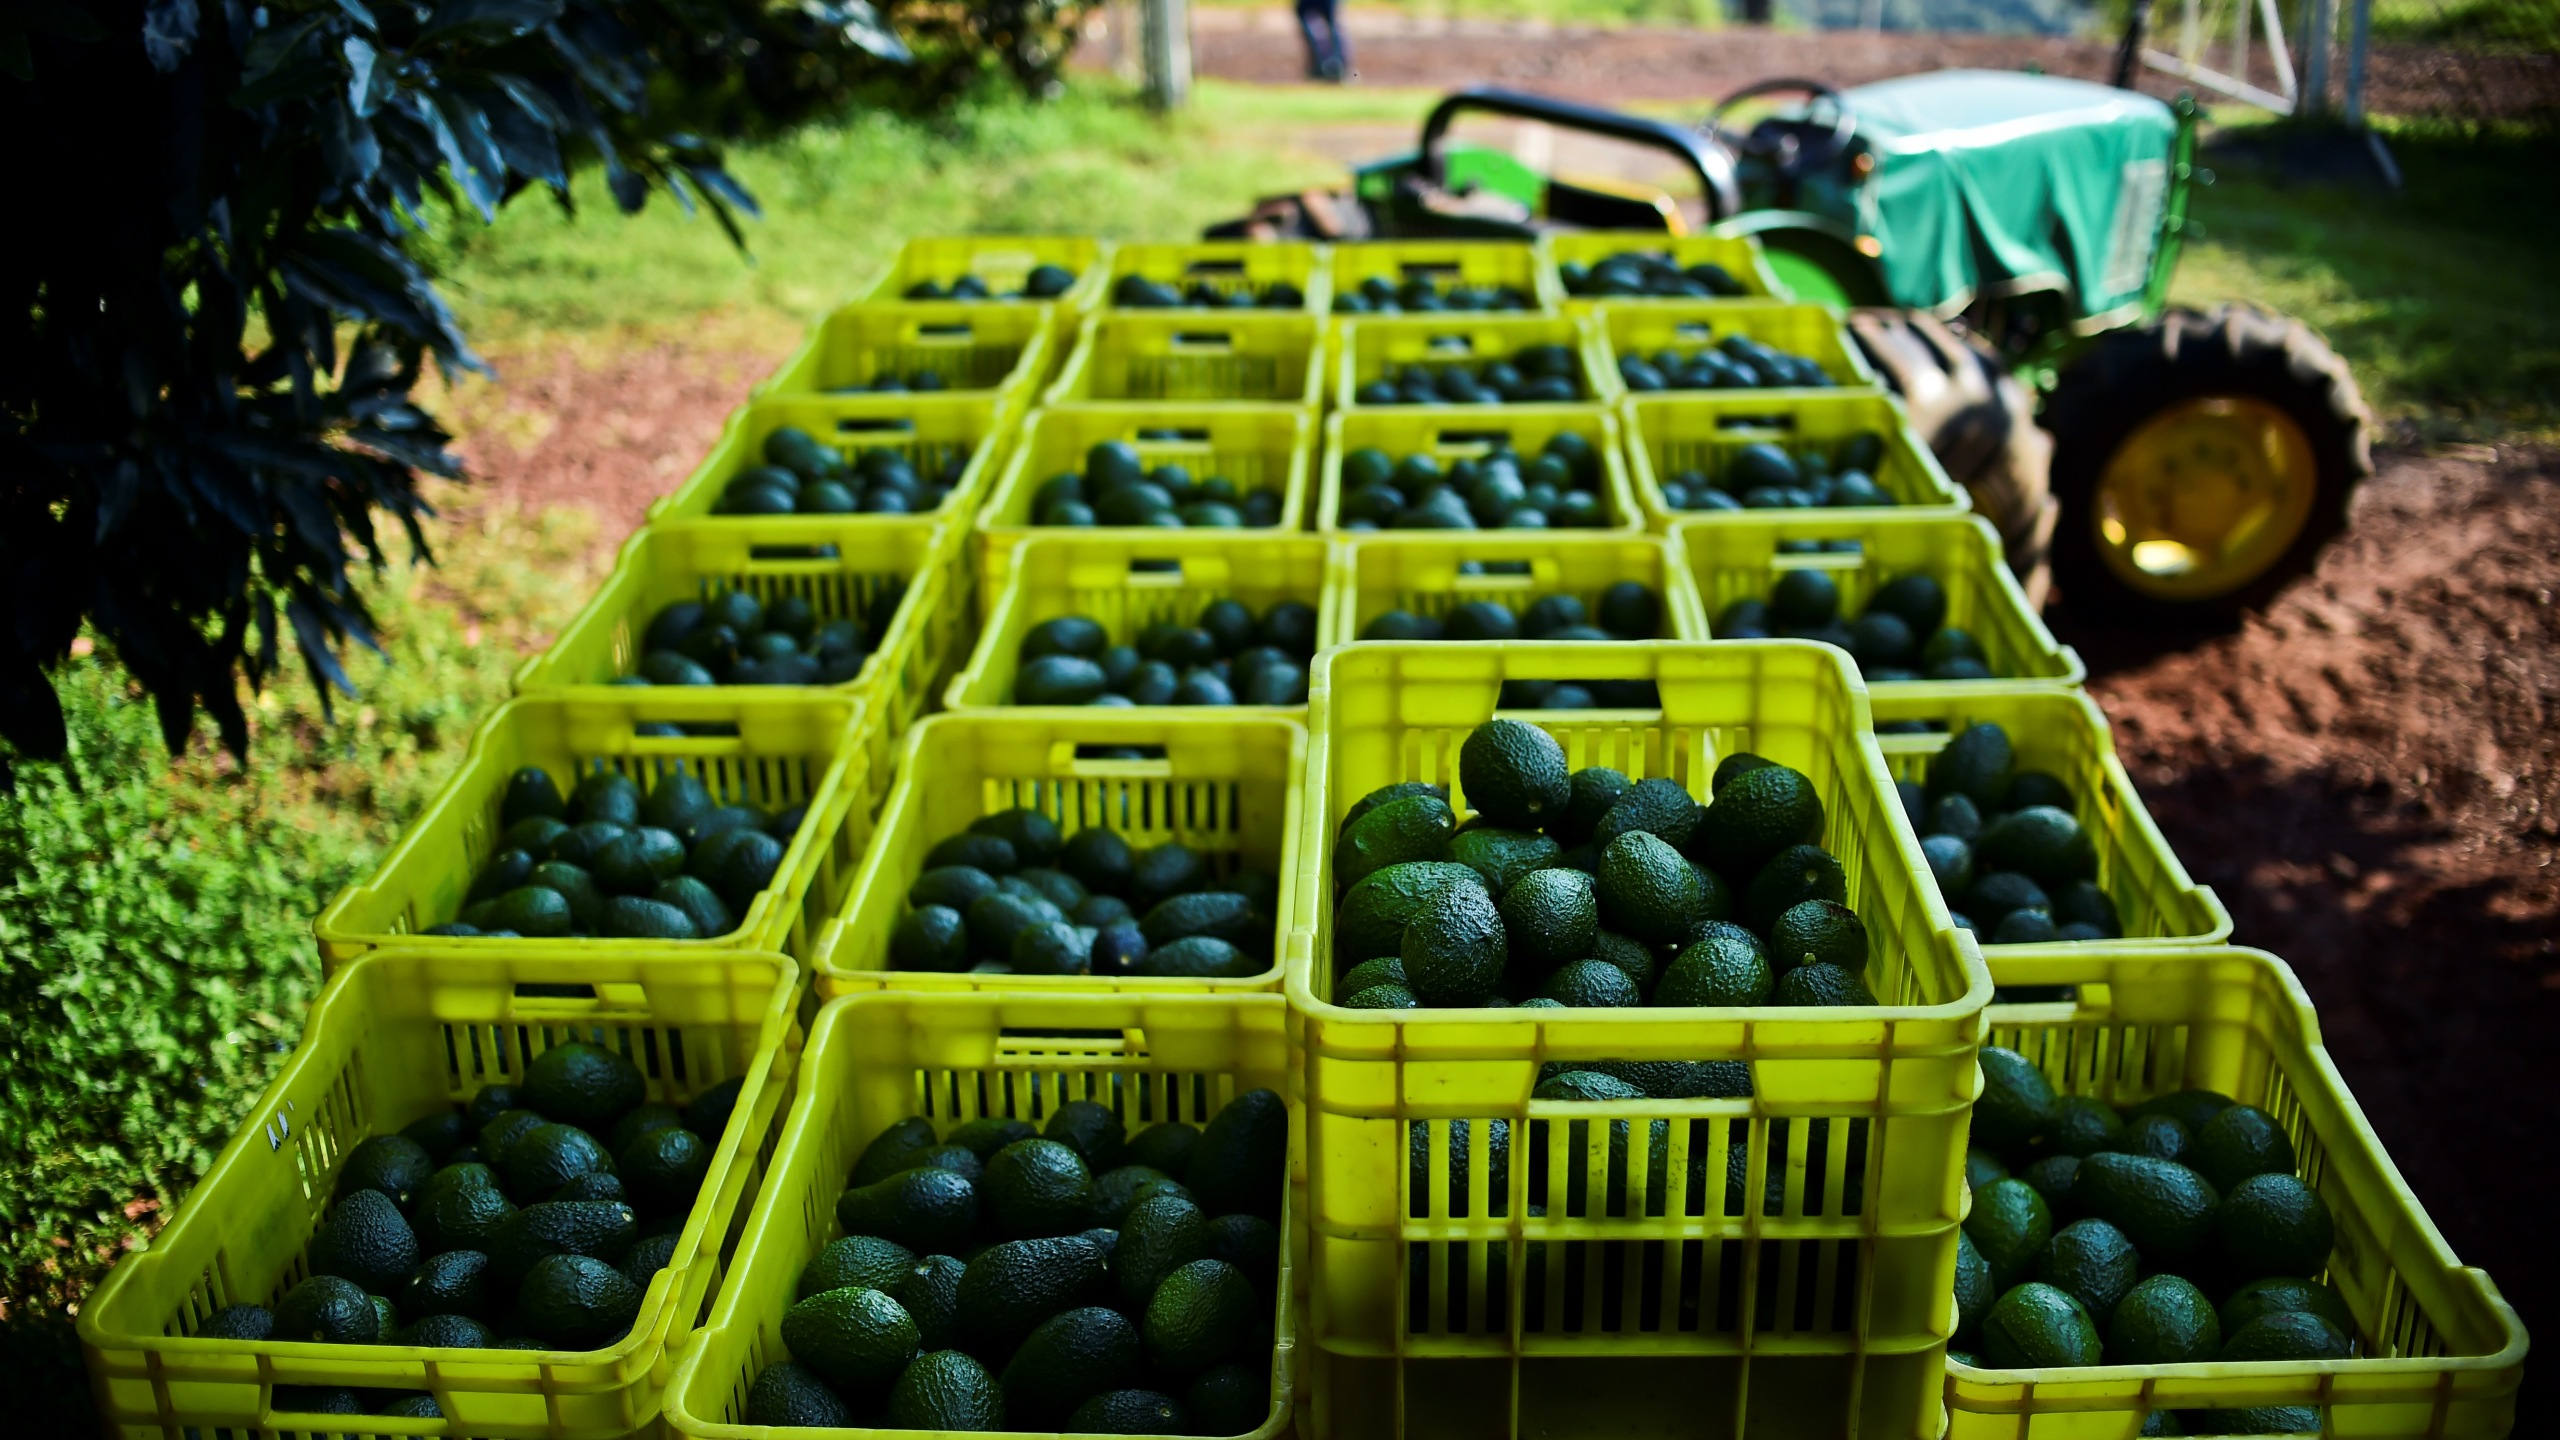 Fruit boxes with avocados are seen during harvest at an orchard in Uruapan, Michoacan state, Mexico, on Oct. 19, 2016. (Credit: Ronaldo Schemidt / AFP / Getty Images)